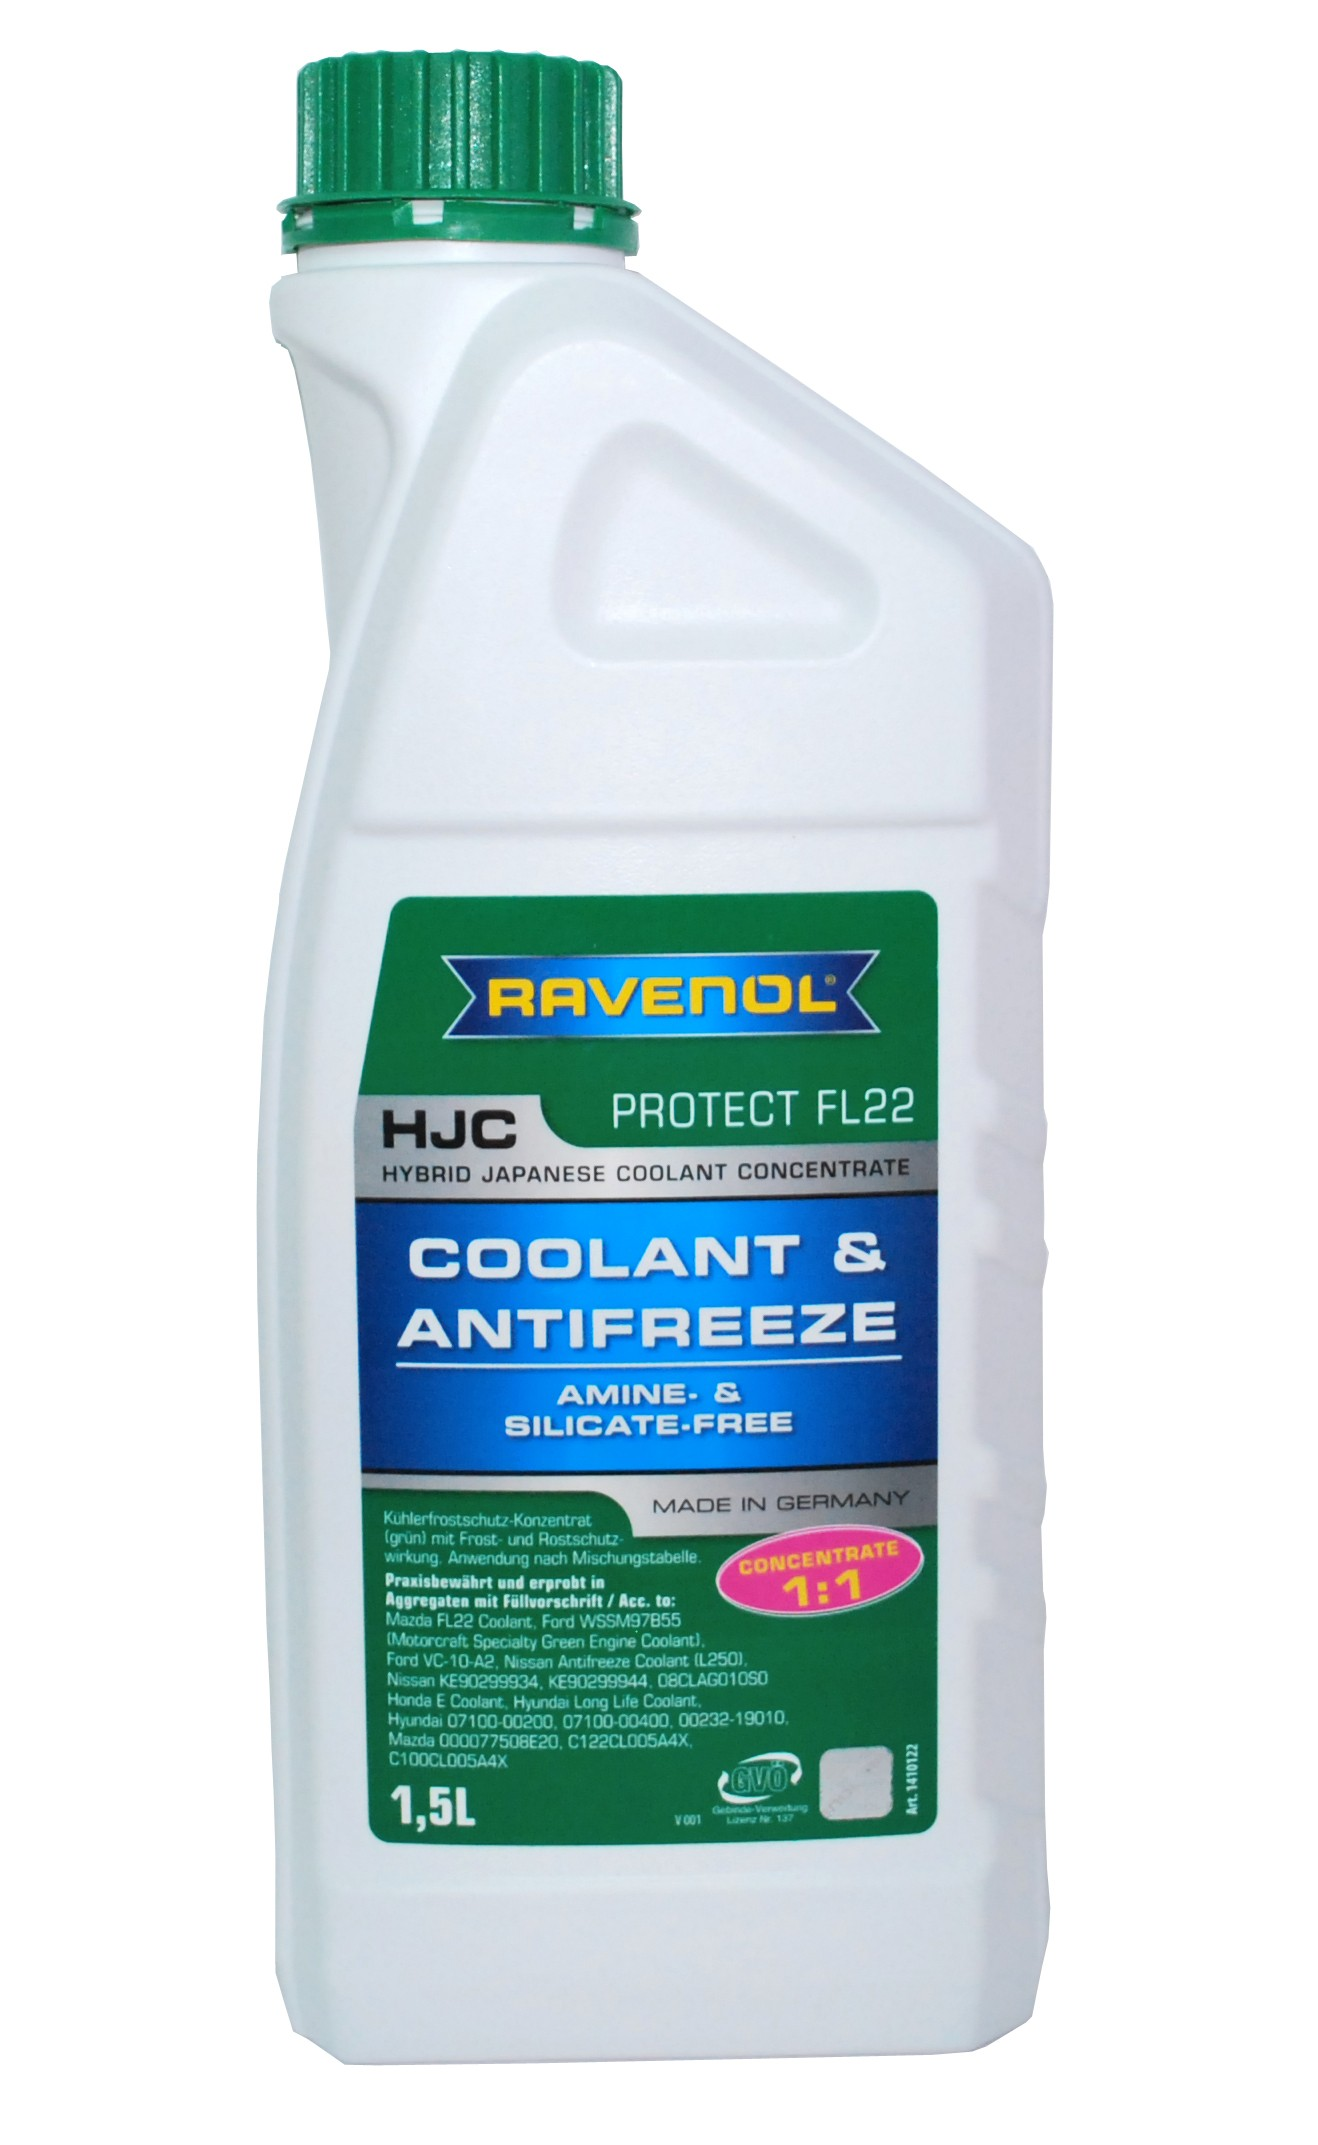 Antigel verde RAVENOL 1410122 HJC ANTIFREEZE JAPANESE P-OAT GREEN 1.5L